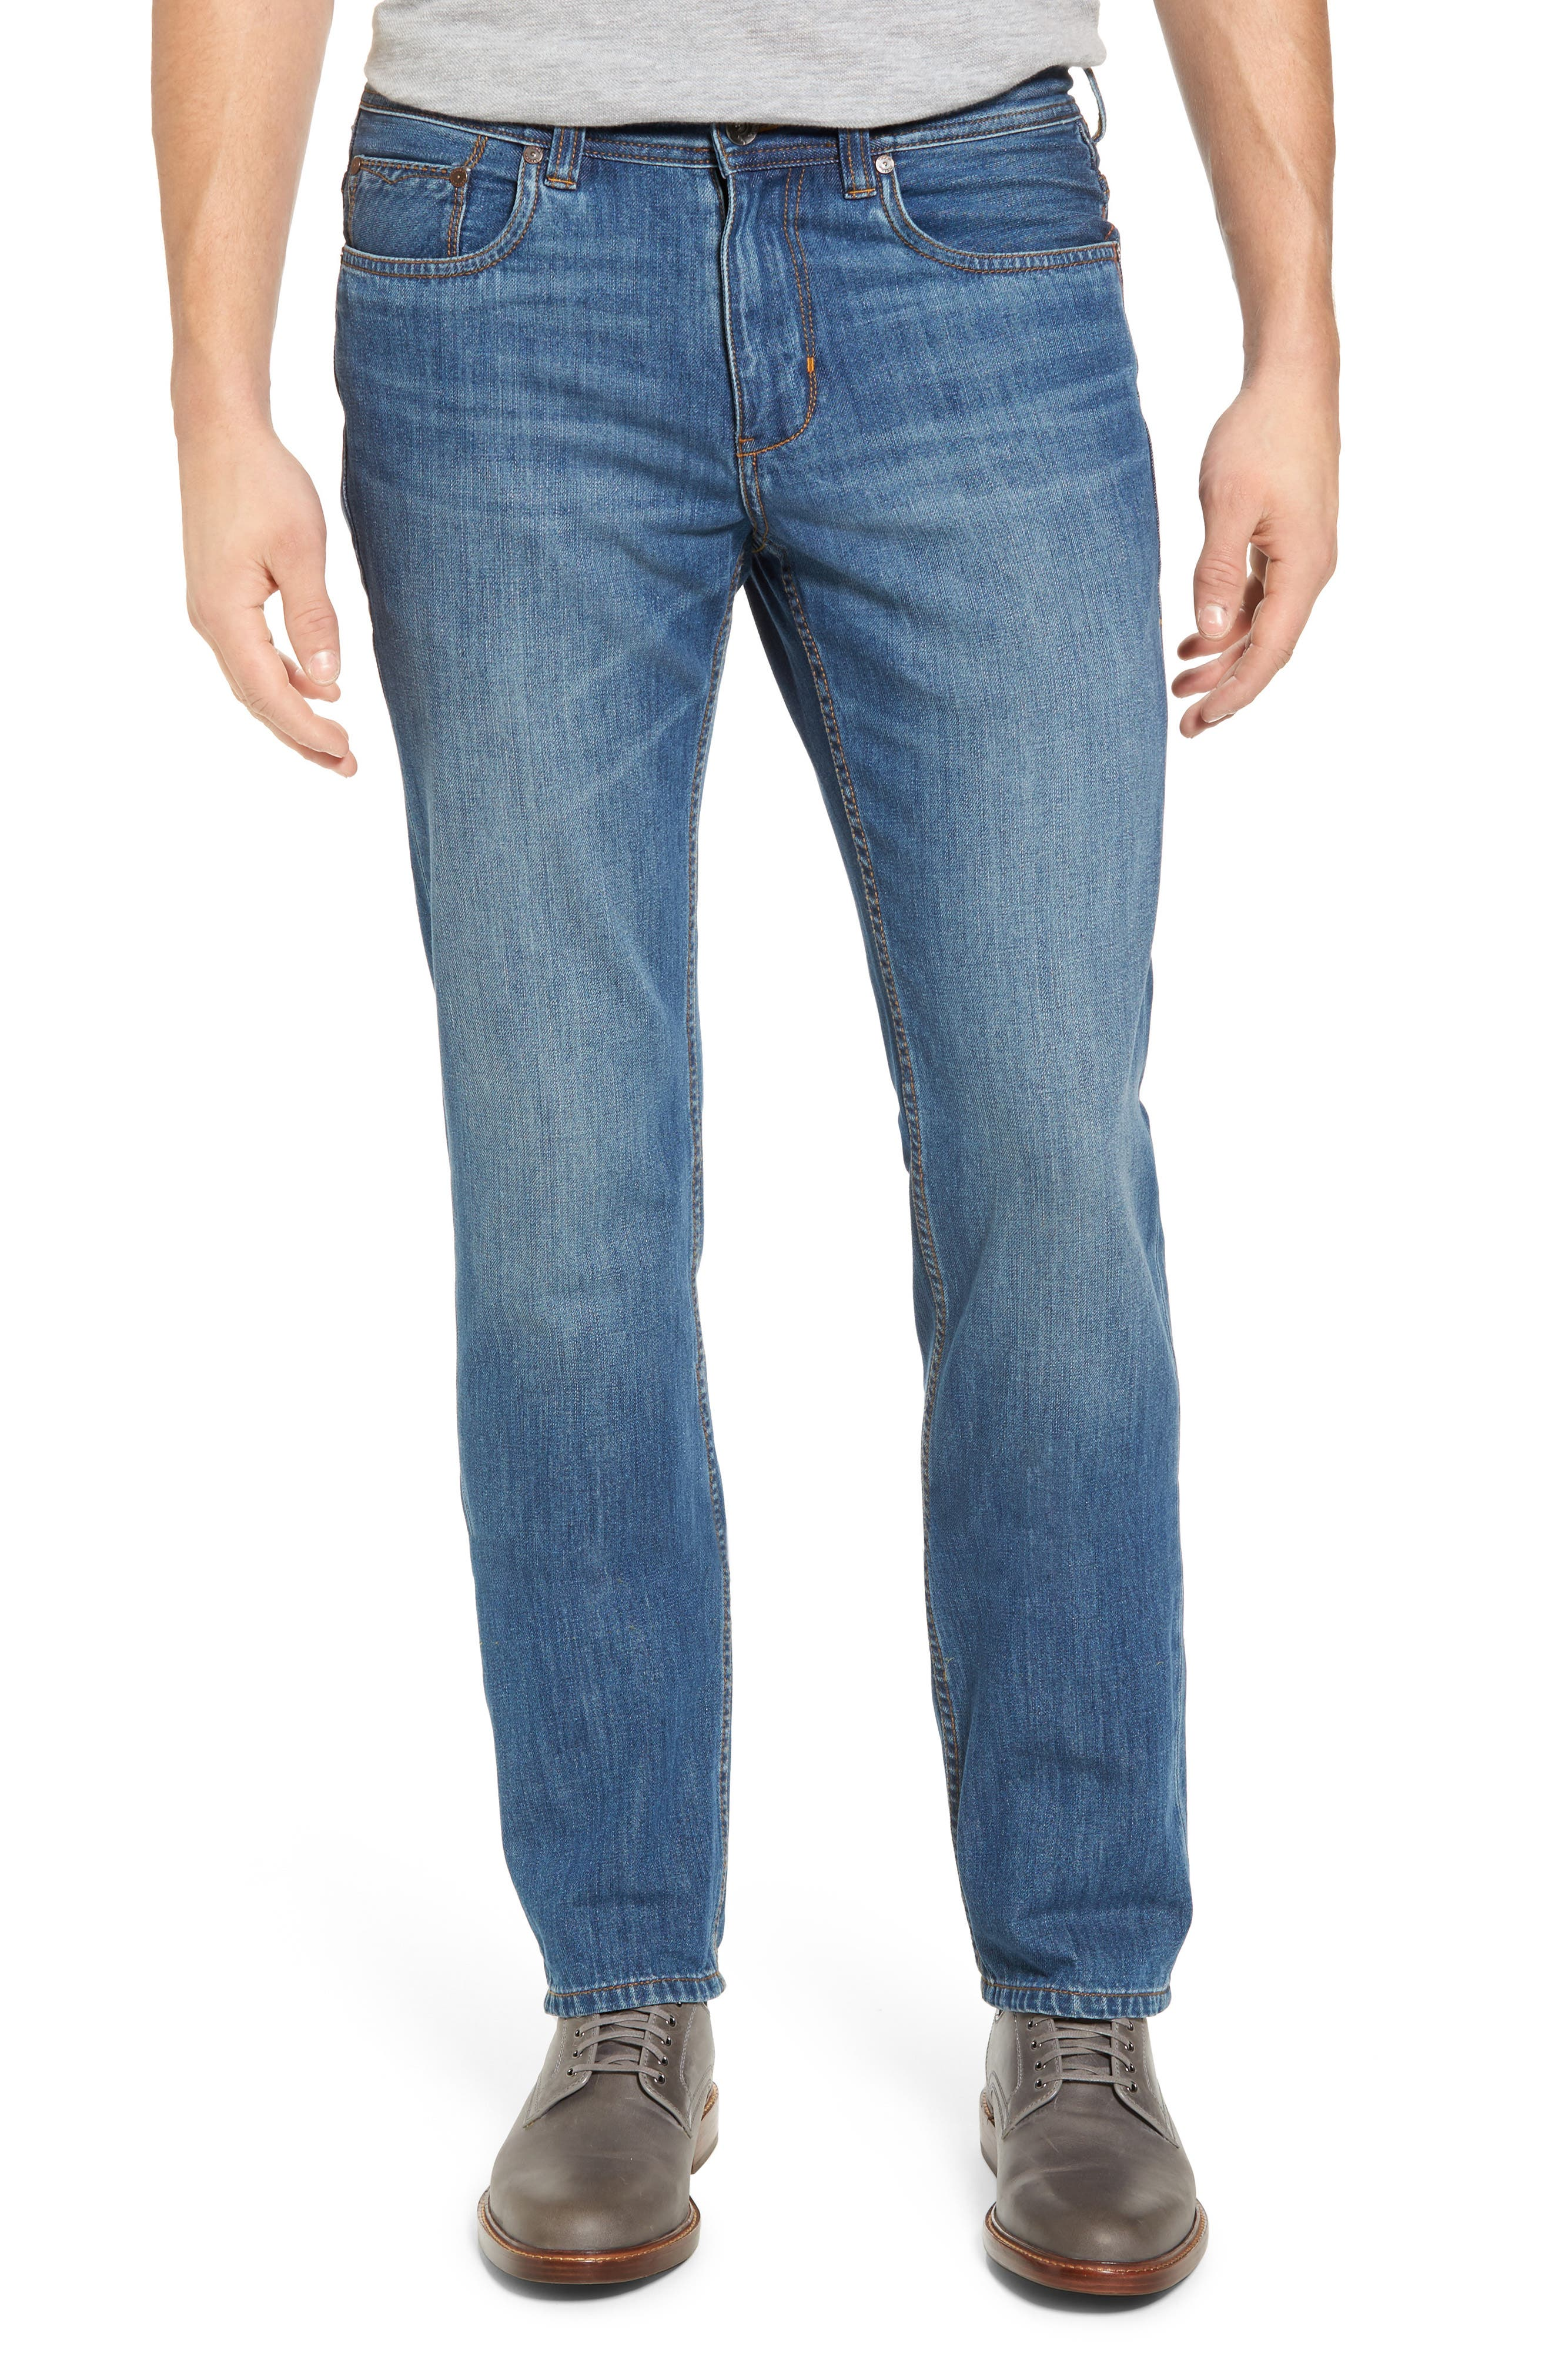 Bardabos Straight Leg Jeans,                         Main,                         color, 400